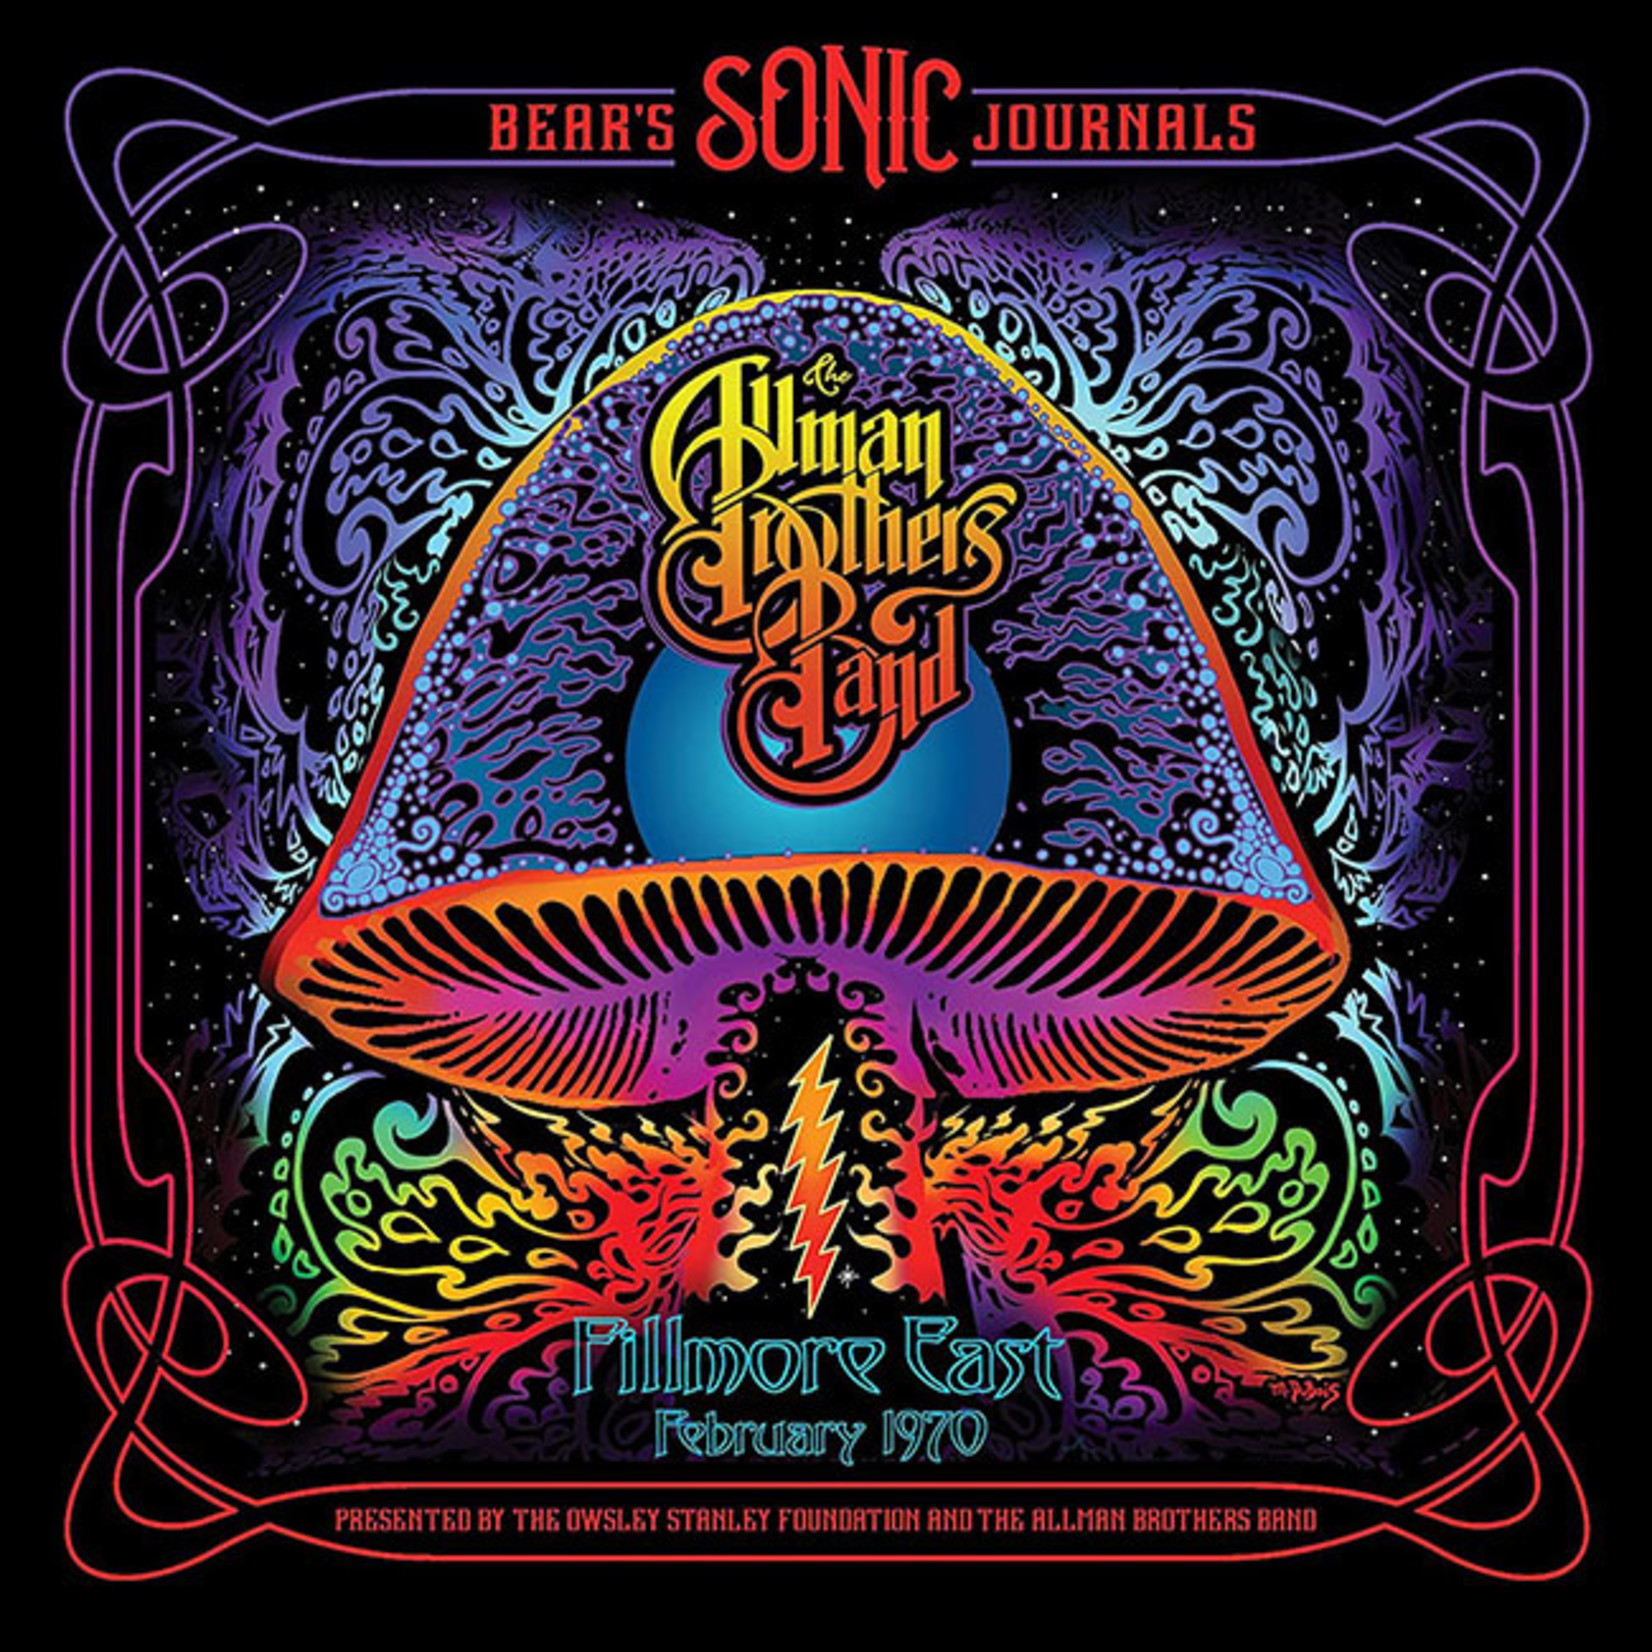 [New] Allman Brothers Band: Bear's Sonic Journals: Fillmore East, February 1970 (2LP)